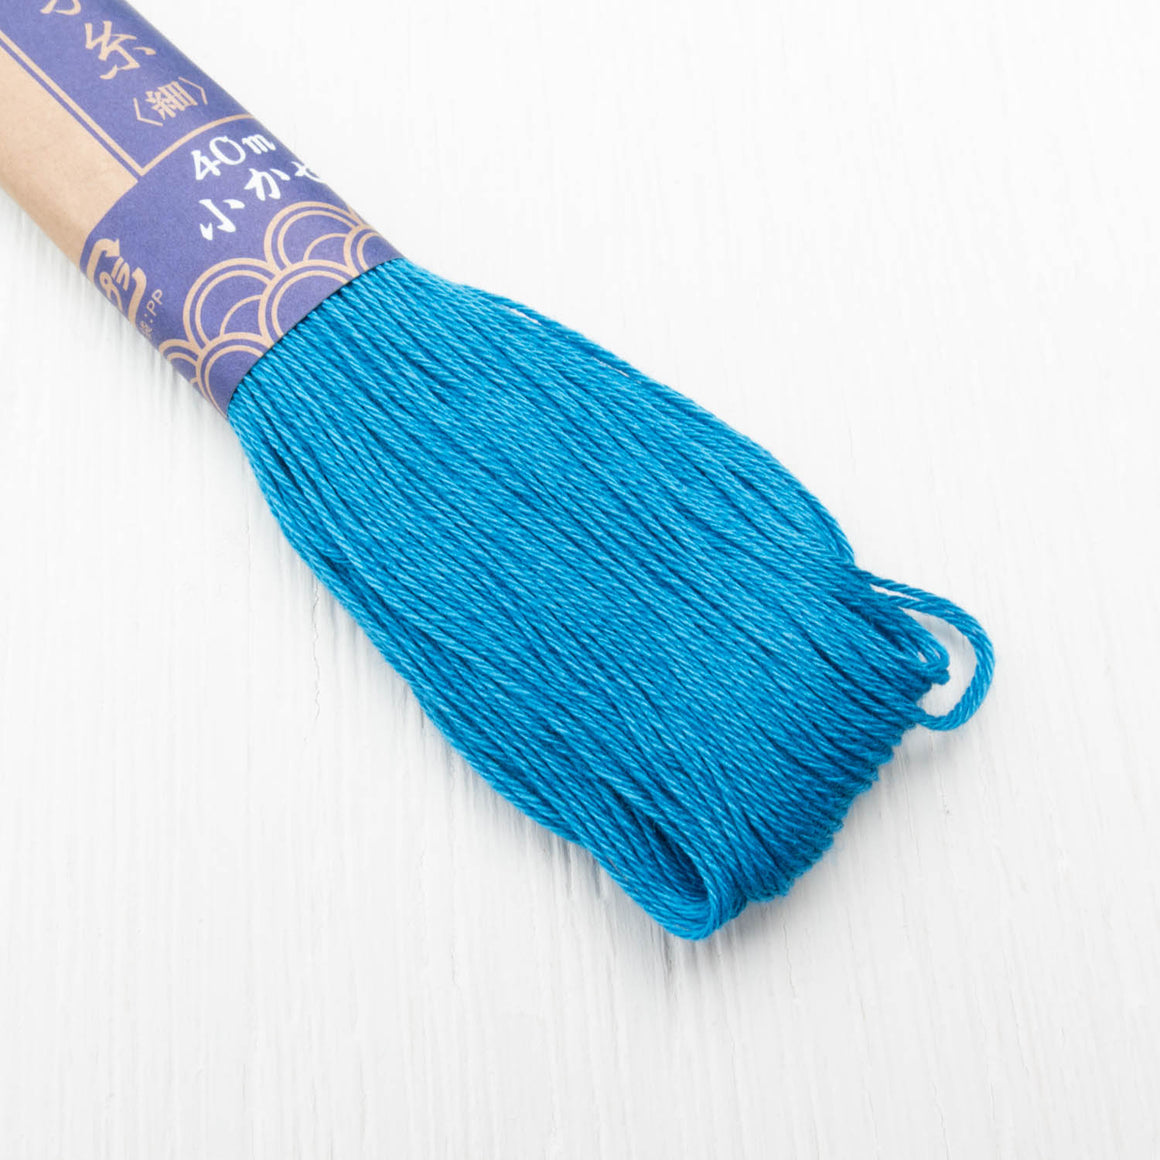 Daruma Sashiko Thread - Denim Blue (#27) Sashiko - Snuggly Monkey